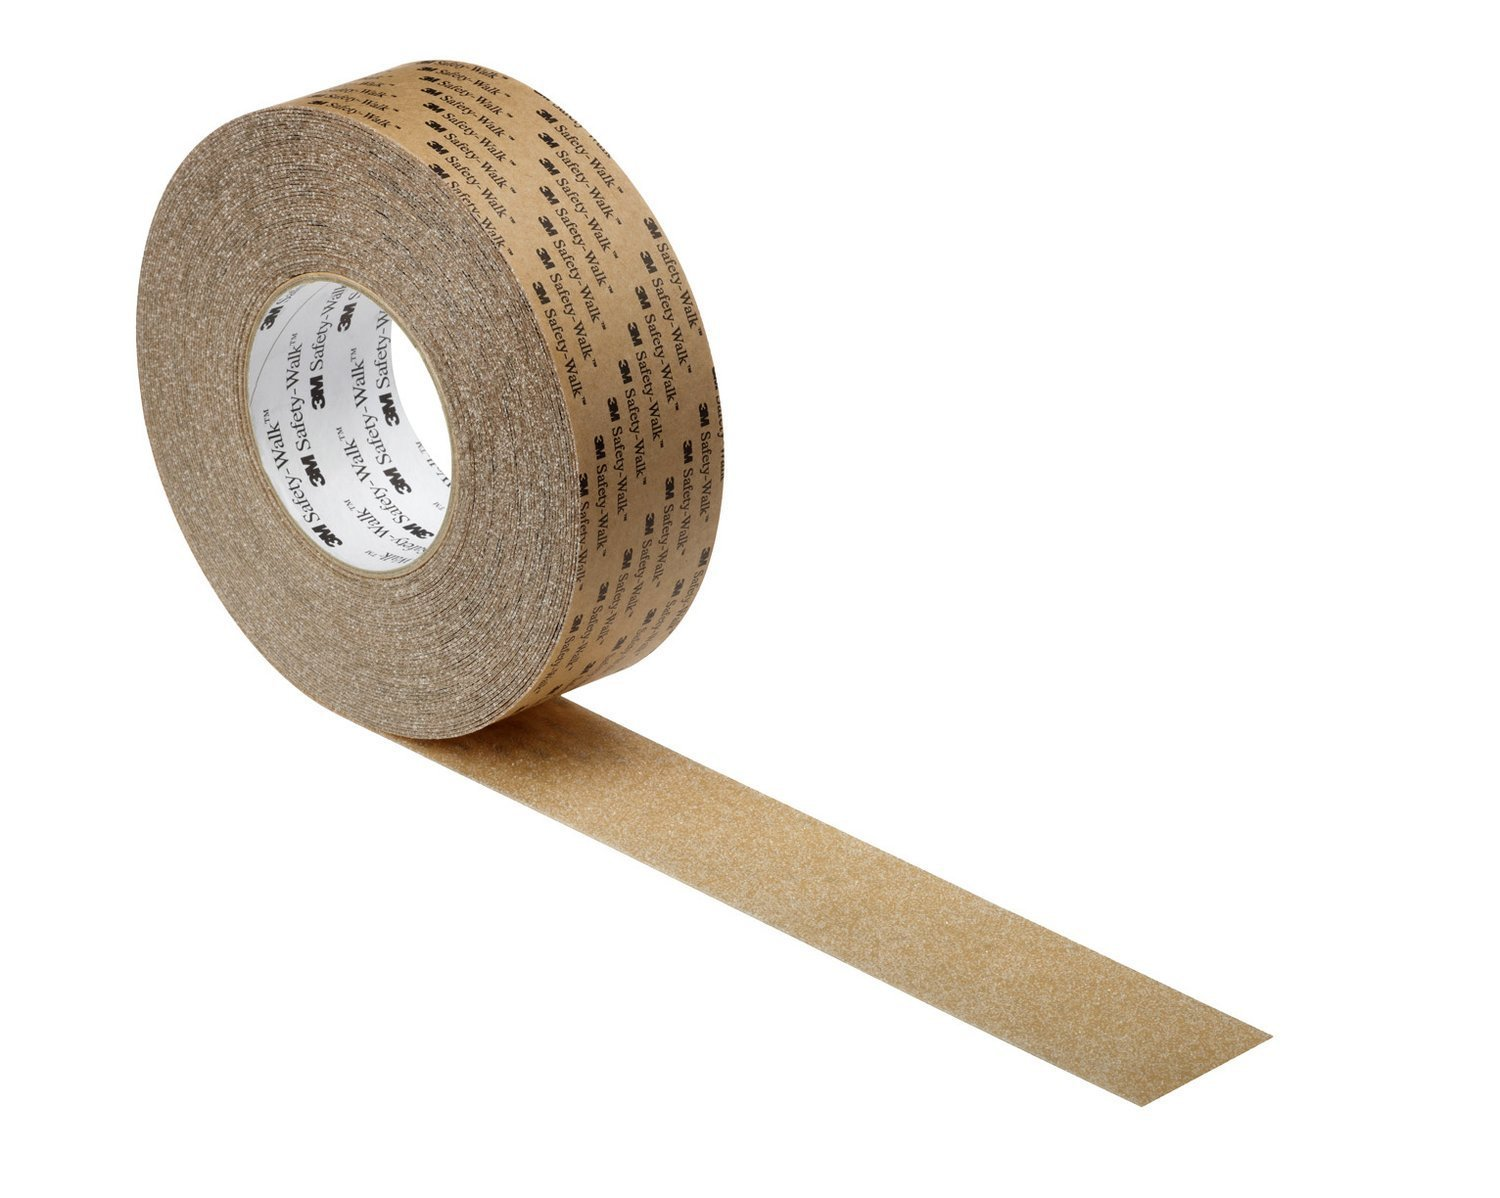 3M™ Safety-Walk™ Slip Resistant General Purpose Tape 600 Series, Transparent, 25 mm x 18.3 m, 1/Case 7000033429 58659178